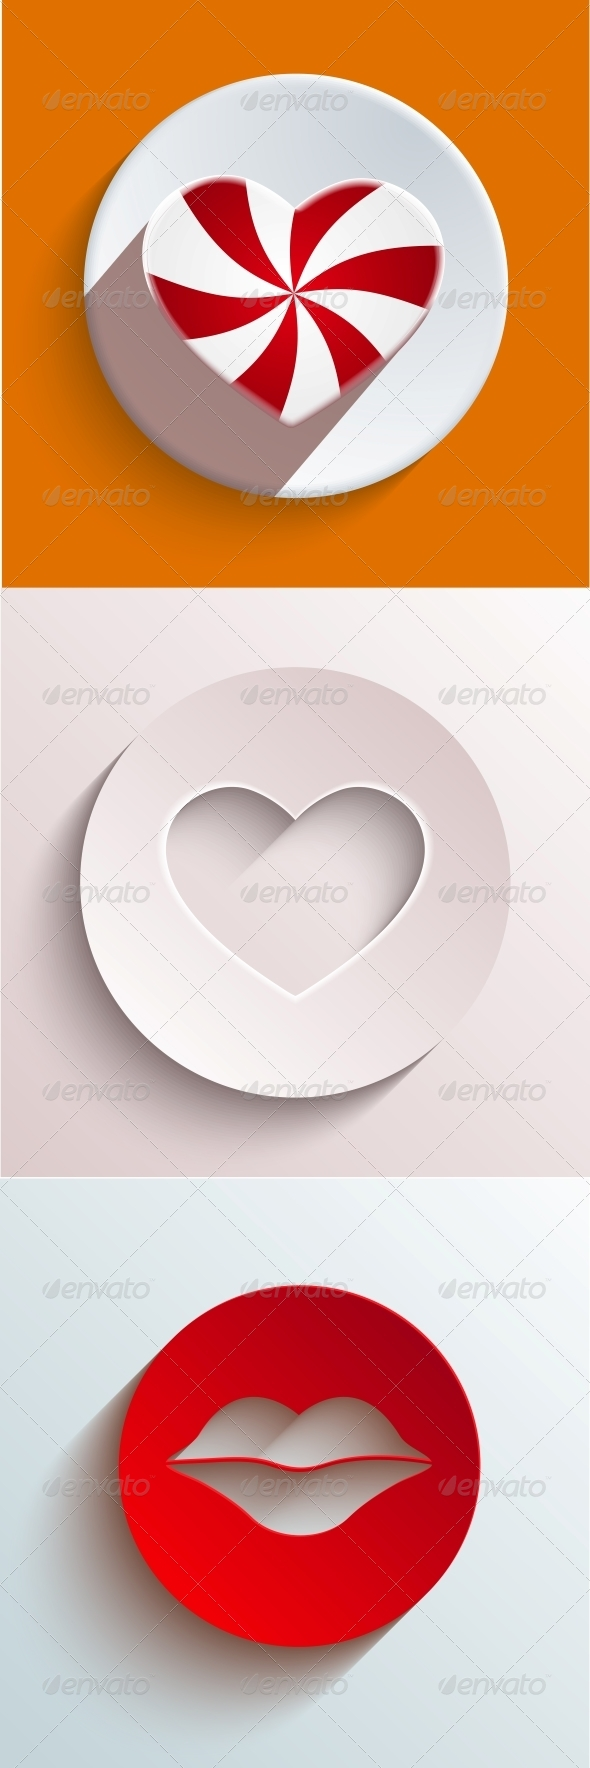 Valentines Day Backgrounds - Valentines Seasons/Holidays